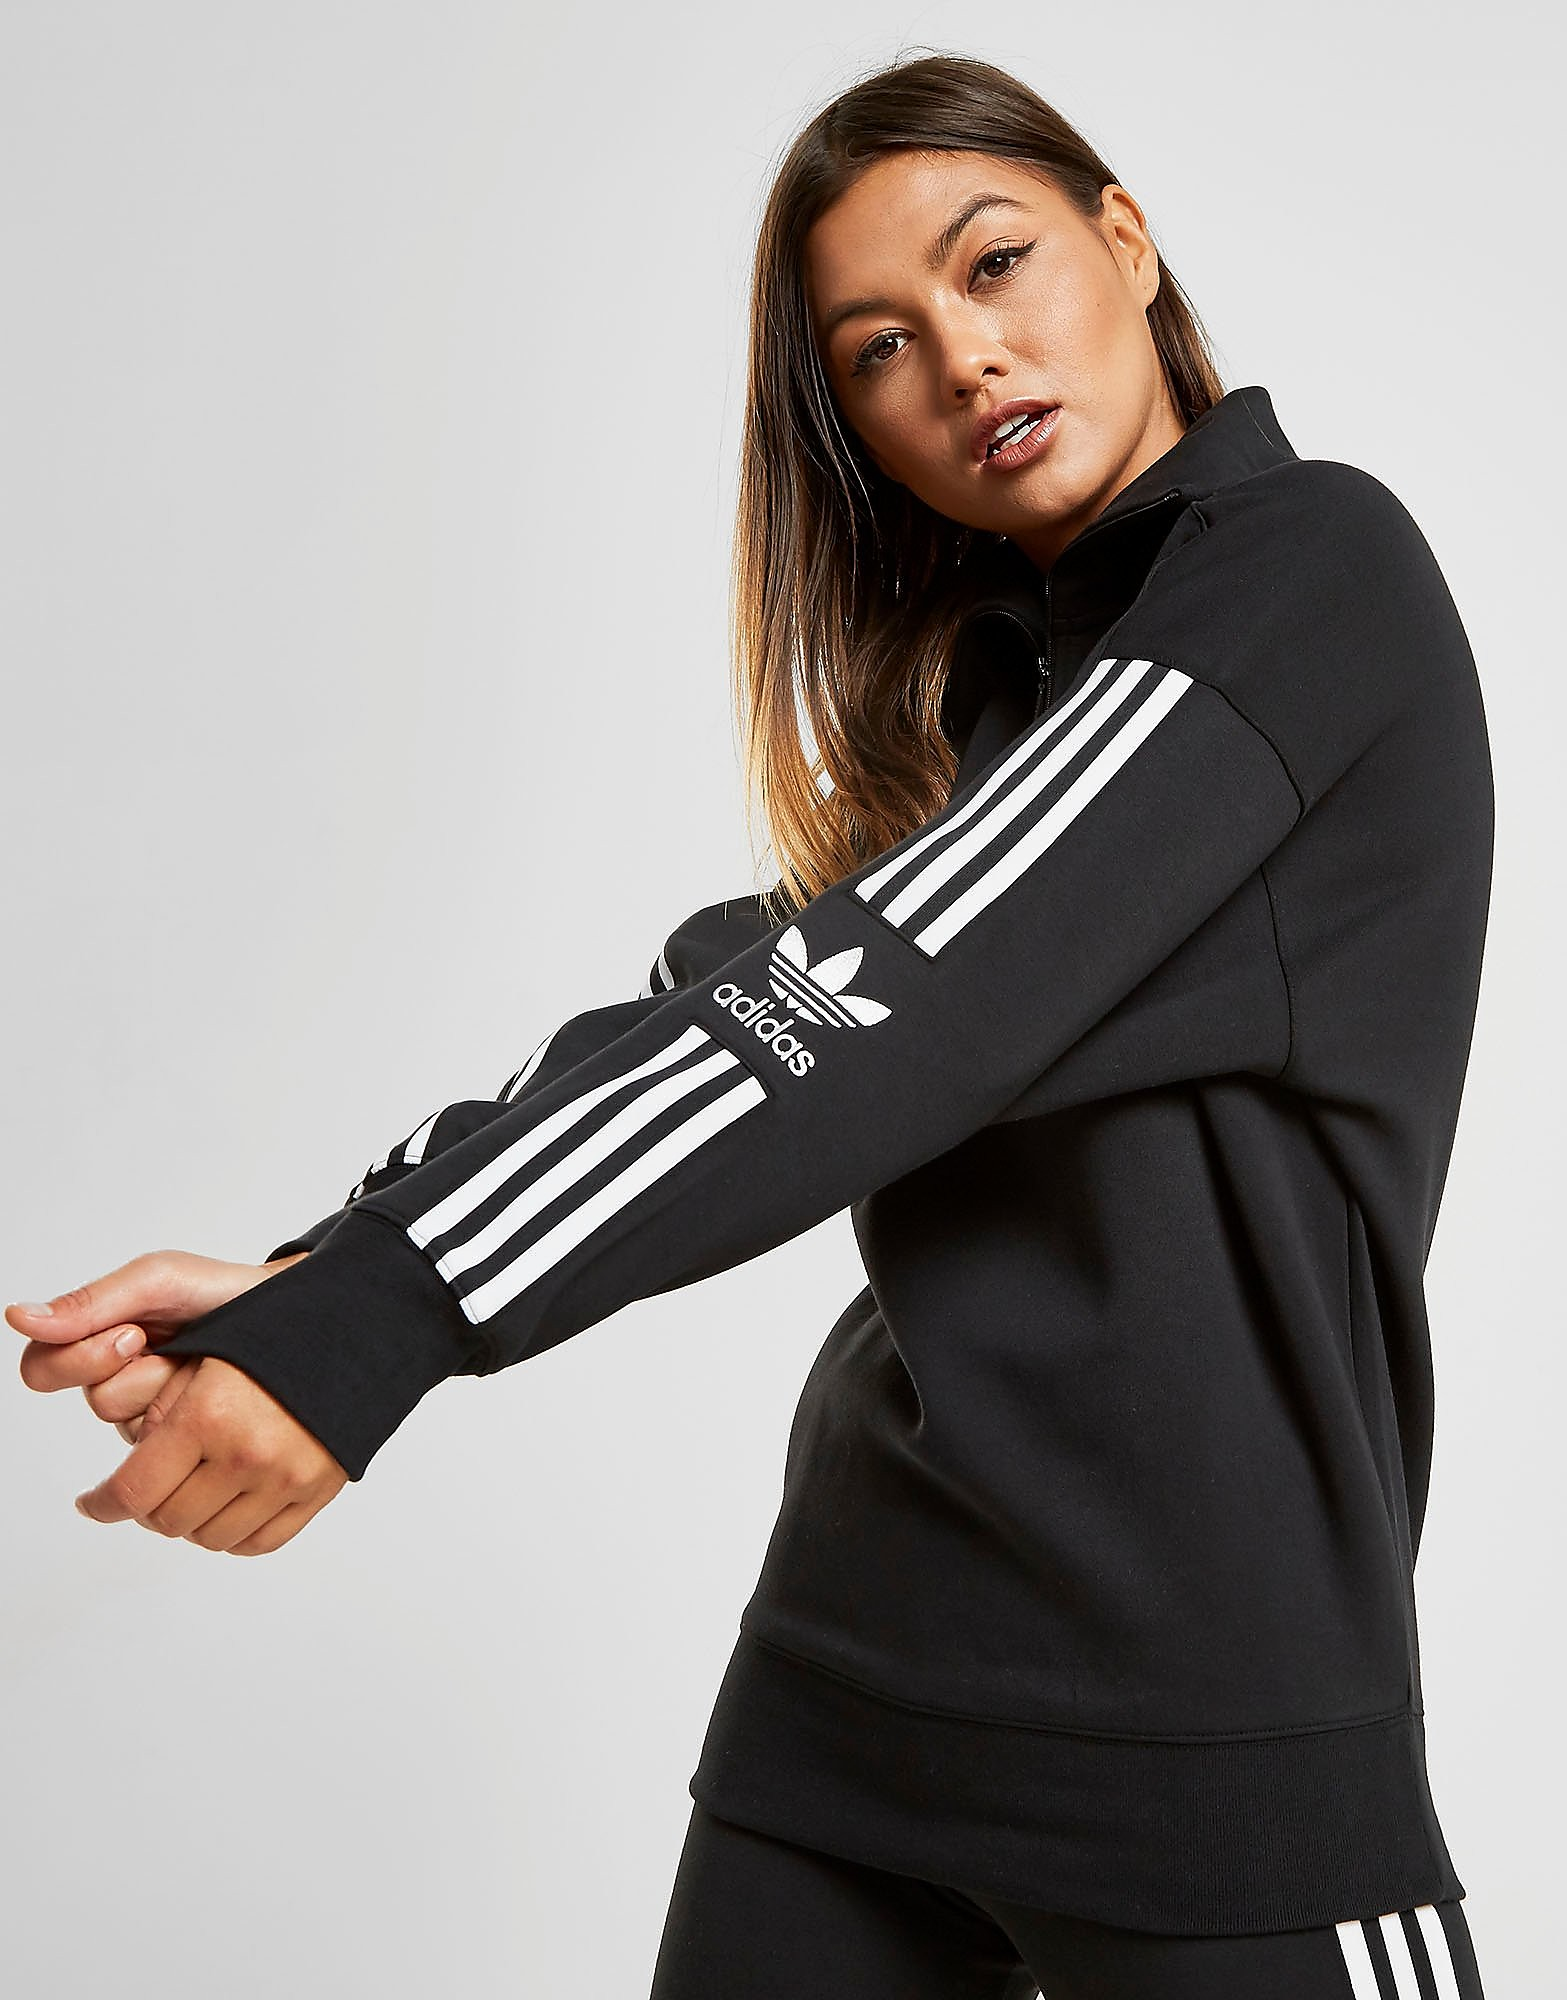 KHOUDIA DIOP | Adidas Outlet | Women | BE